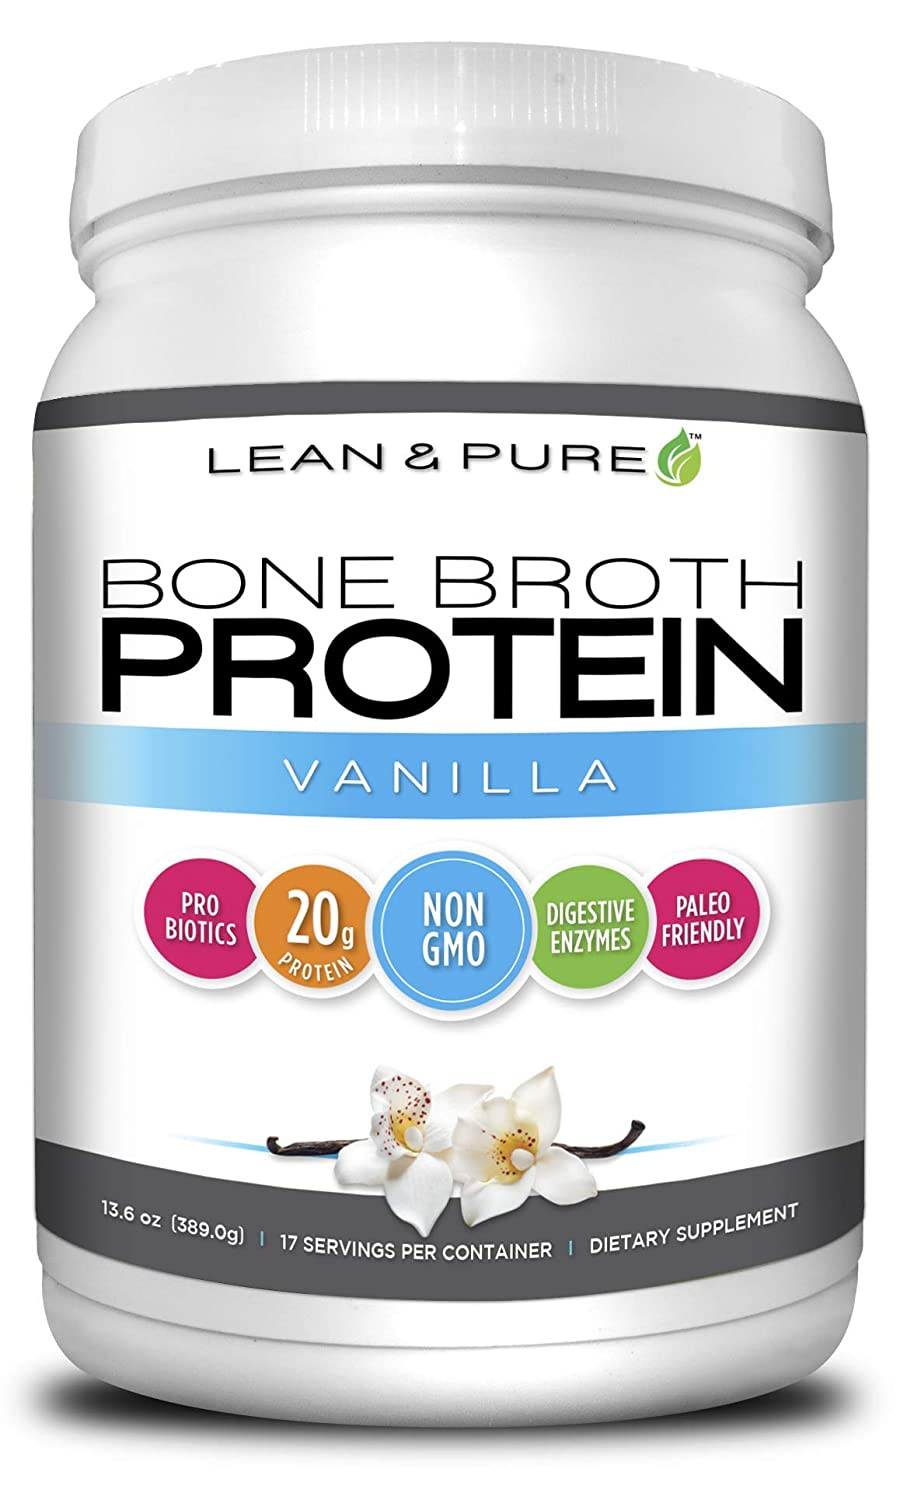 Lean Pure Bone Broth Protein Powder, Non GMO, 20g of Protein, Low carb, Paleo Friendly, Vanilla Flavor, 389g